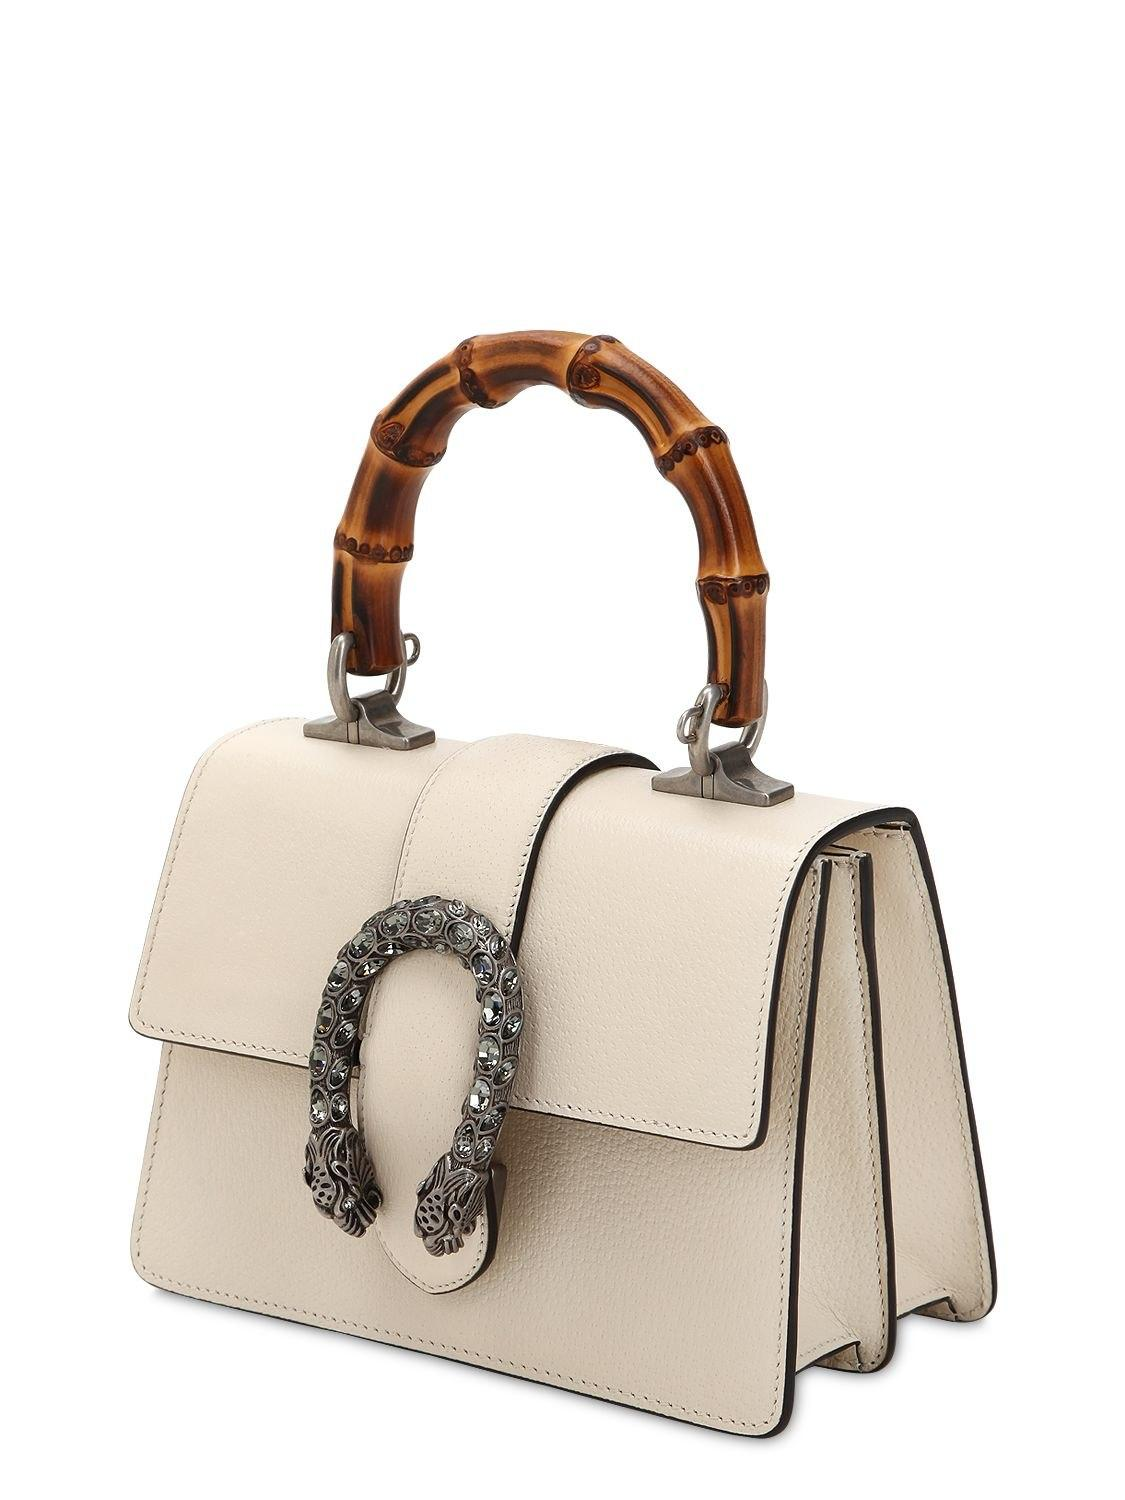 362debf9c8eb Gucci Mini Dionysus Bamboo & Leather Bag in White - Lyst